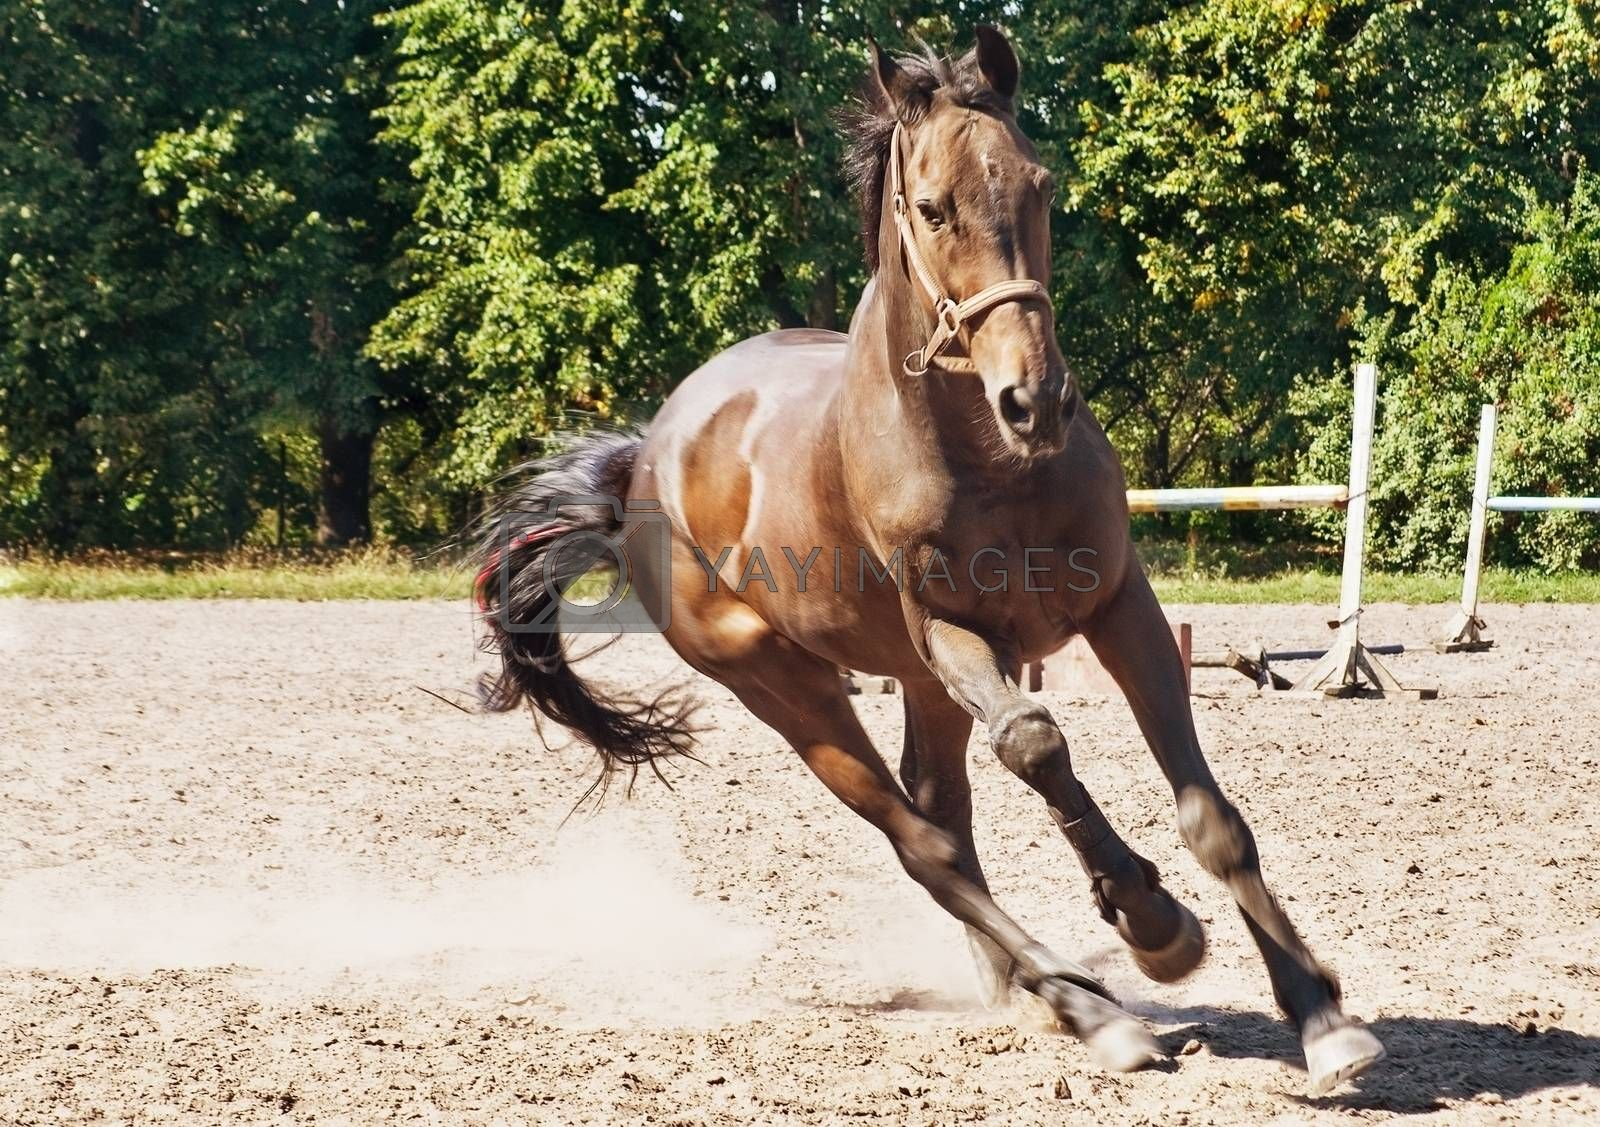 Beautiful horse making a gallop in ranch